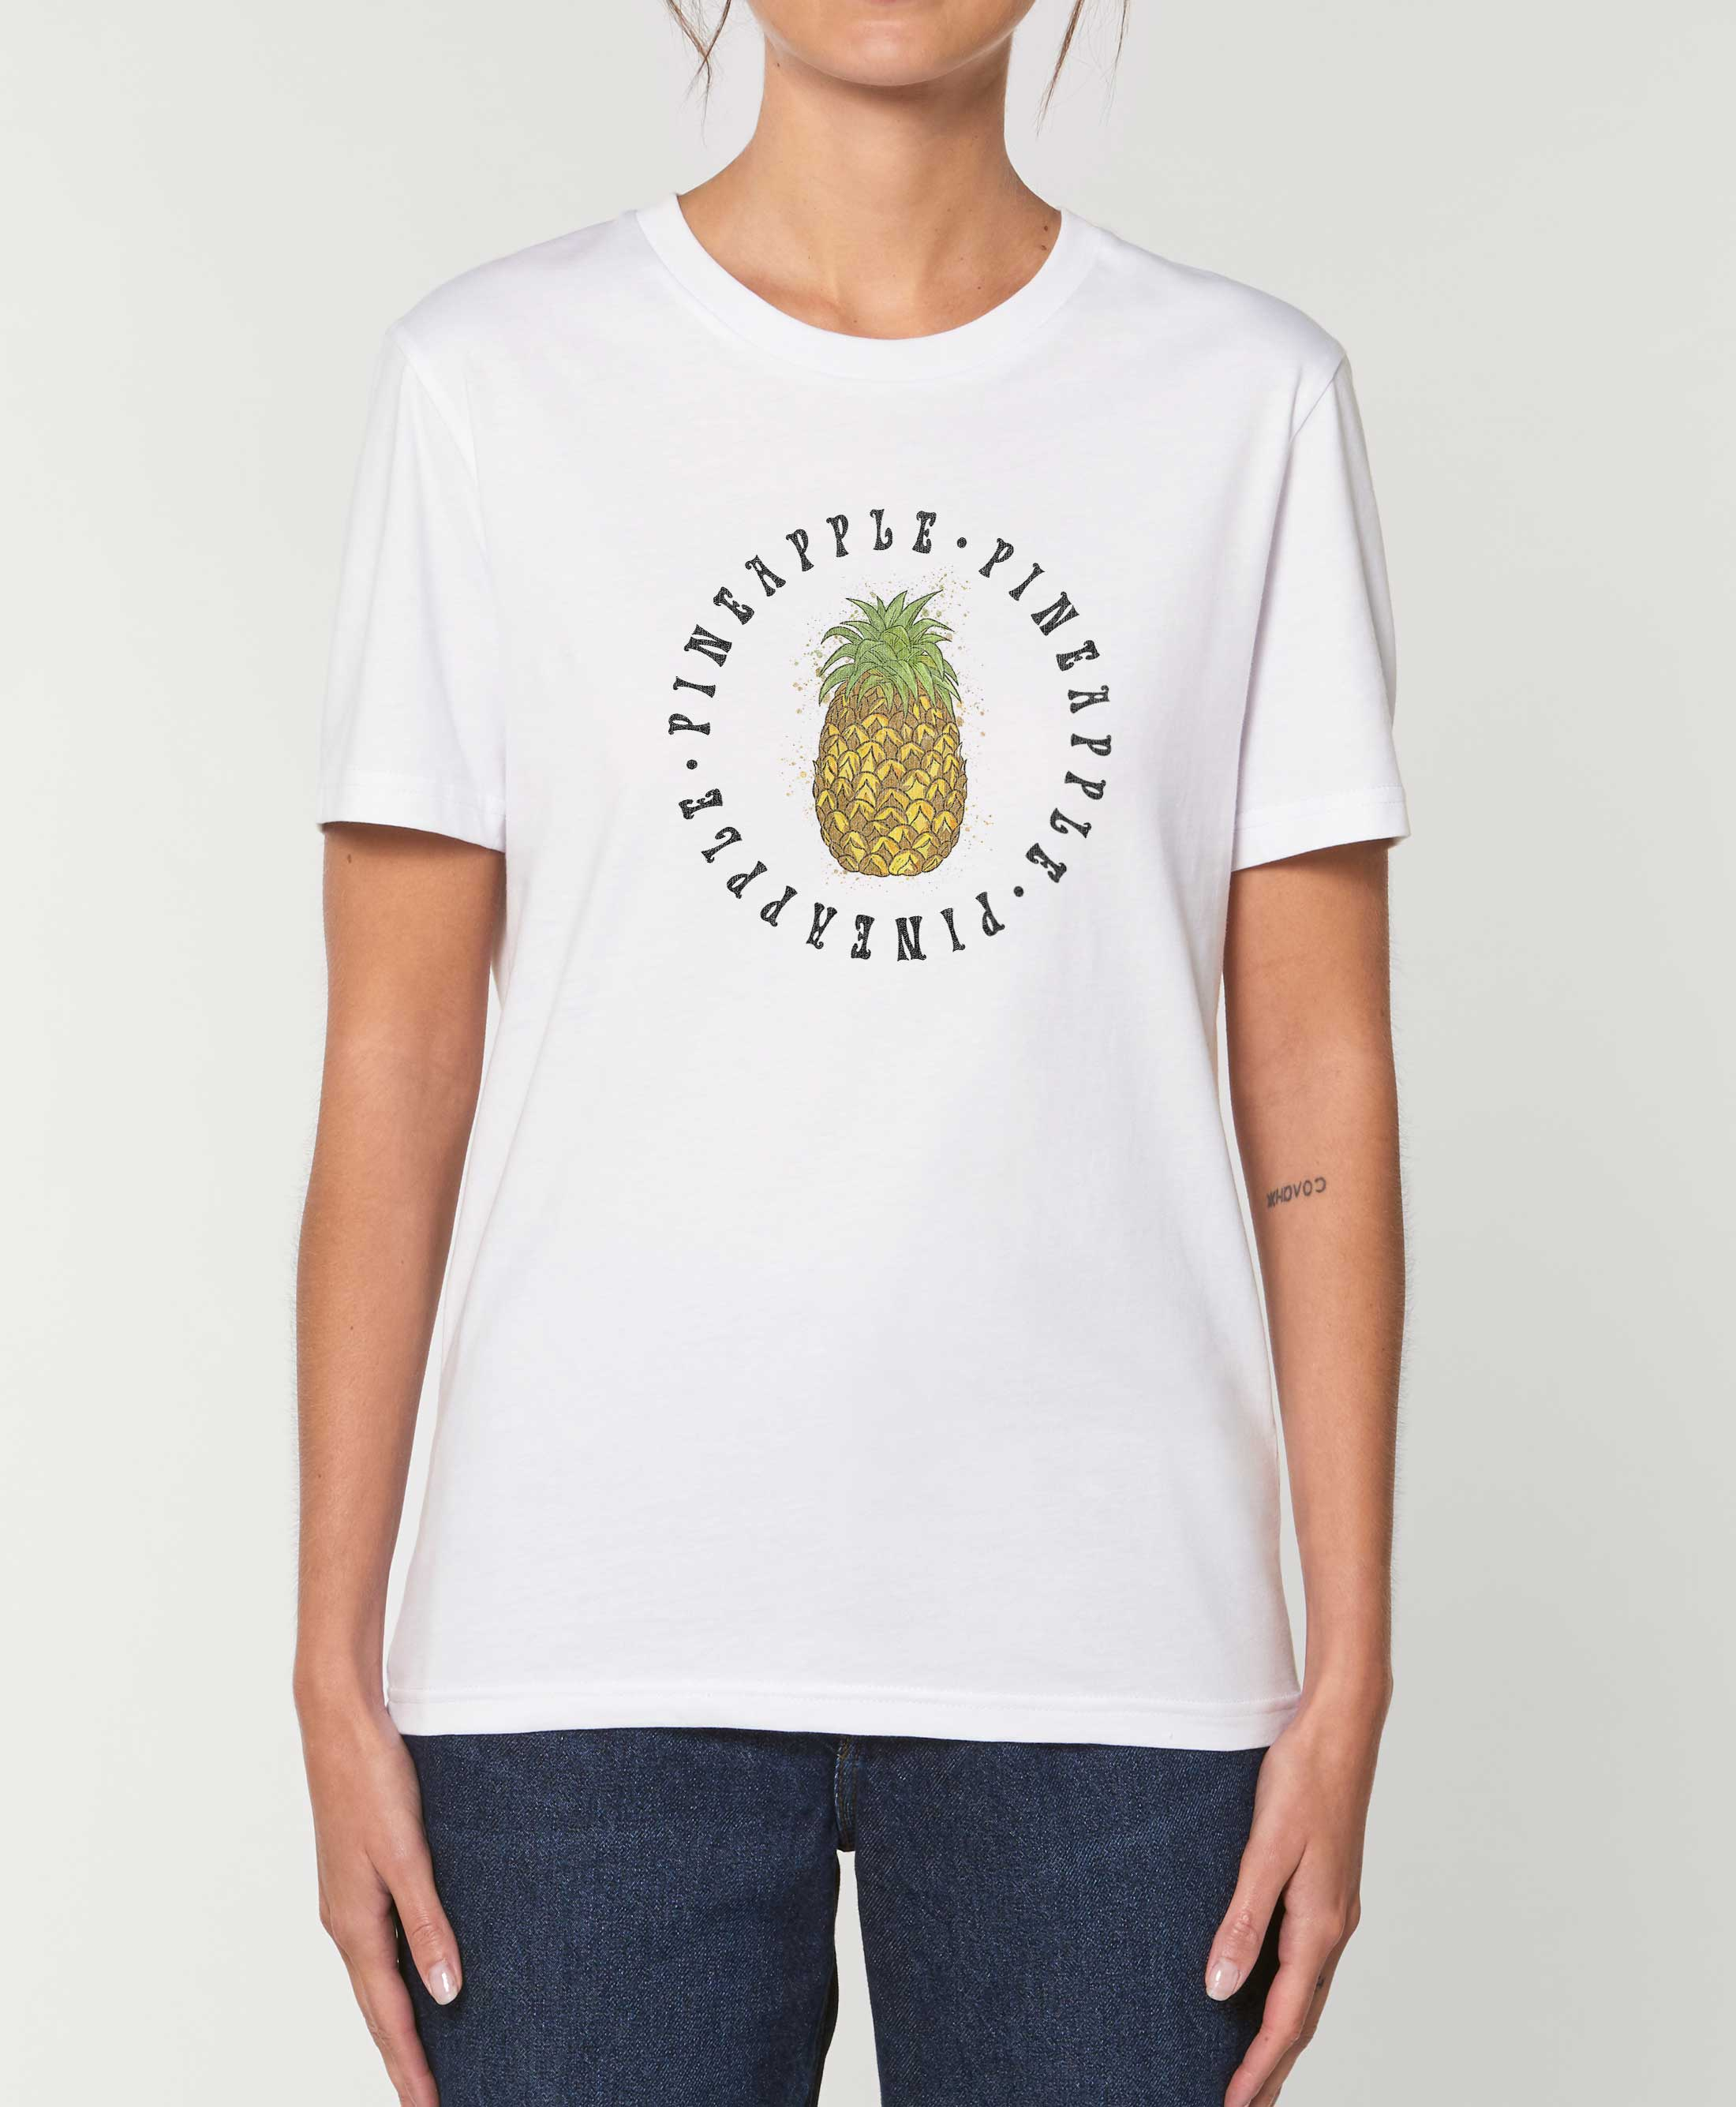 Pineapple T Shirt 2020